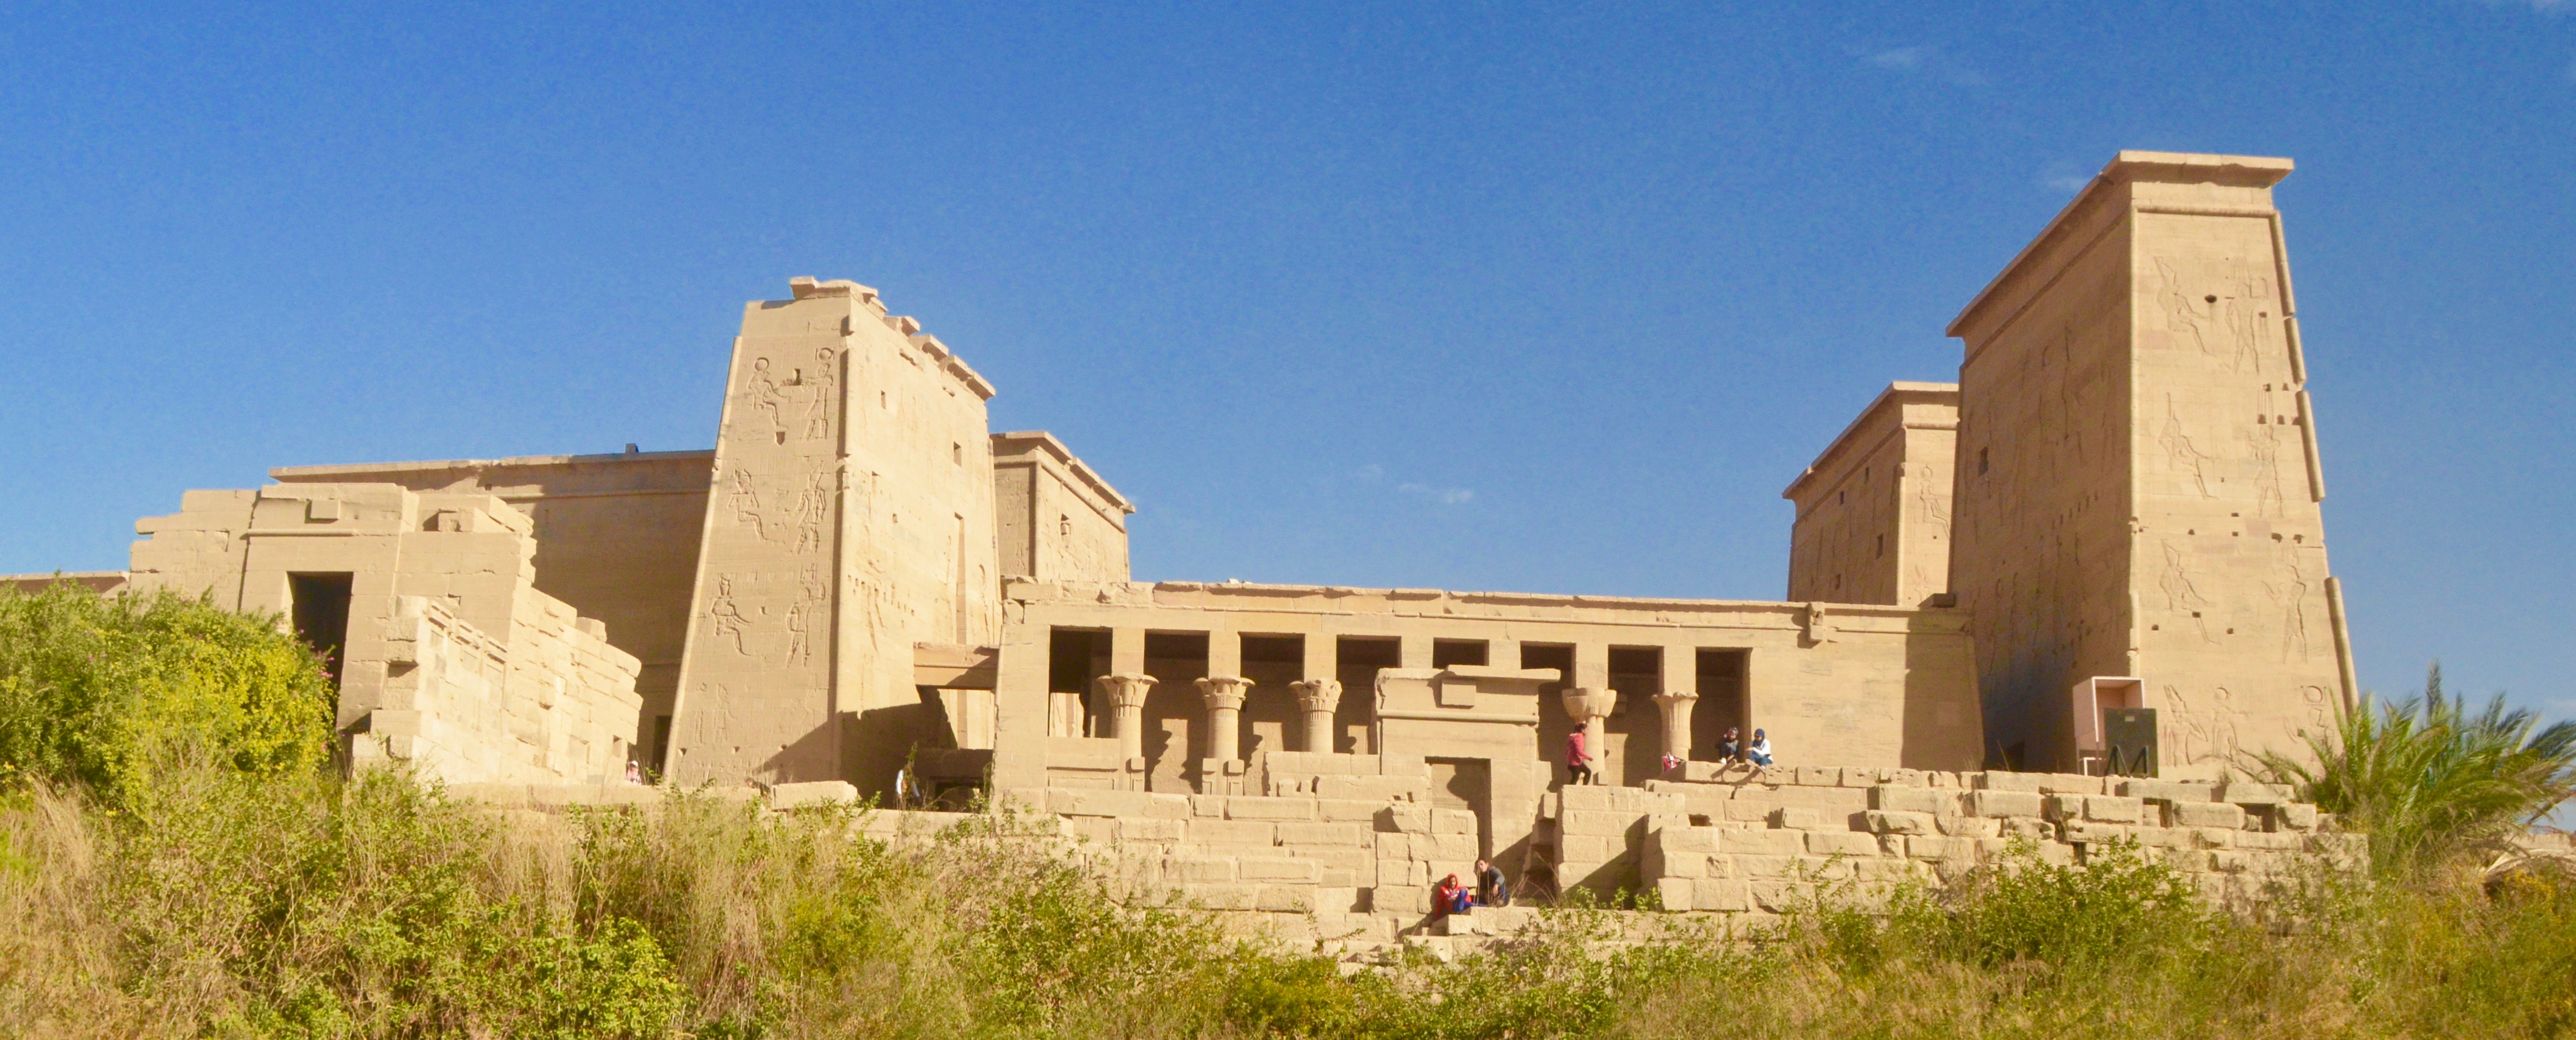 Philae Temples - Temple of Isis from the Nile